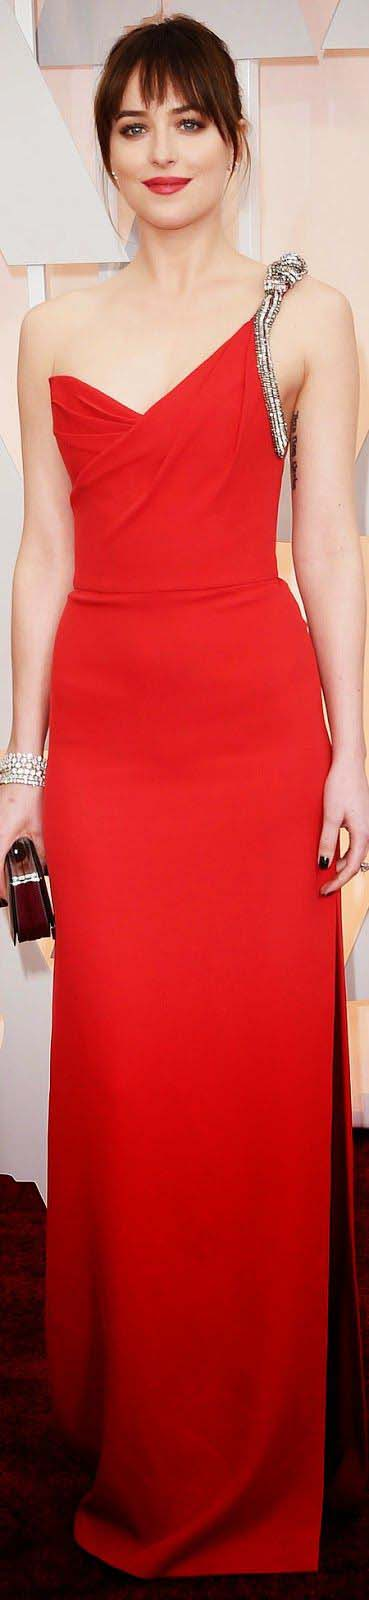 Dakota Johnson in Saint Laurent Dress, Belly Bag and Mark Diamonds Jewelry